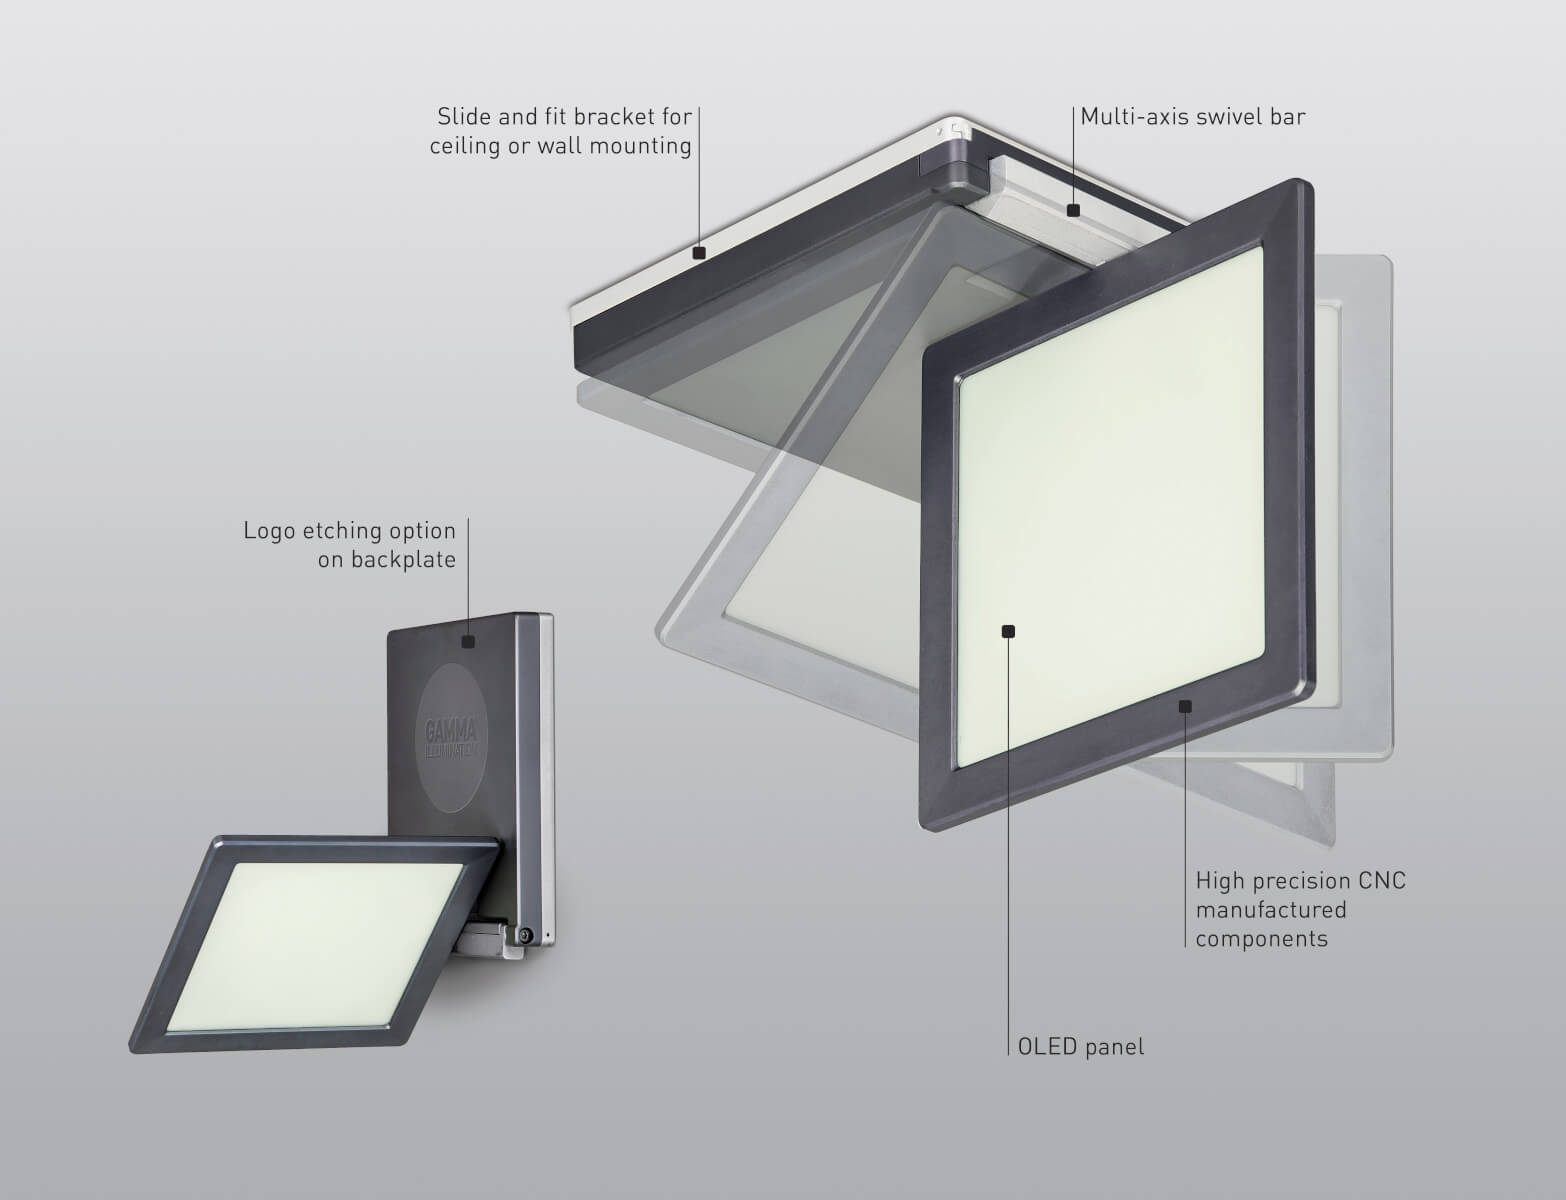 Features of OLED luminaire SquareOne from Gamma Illumination